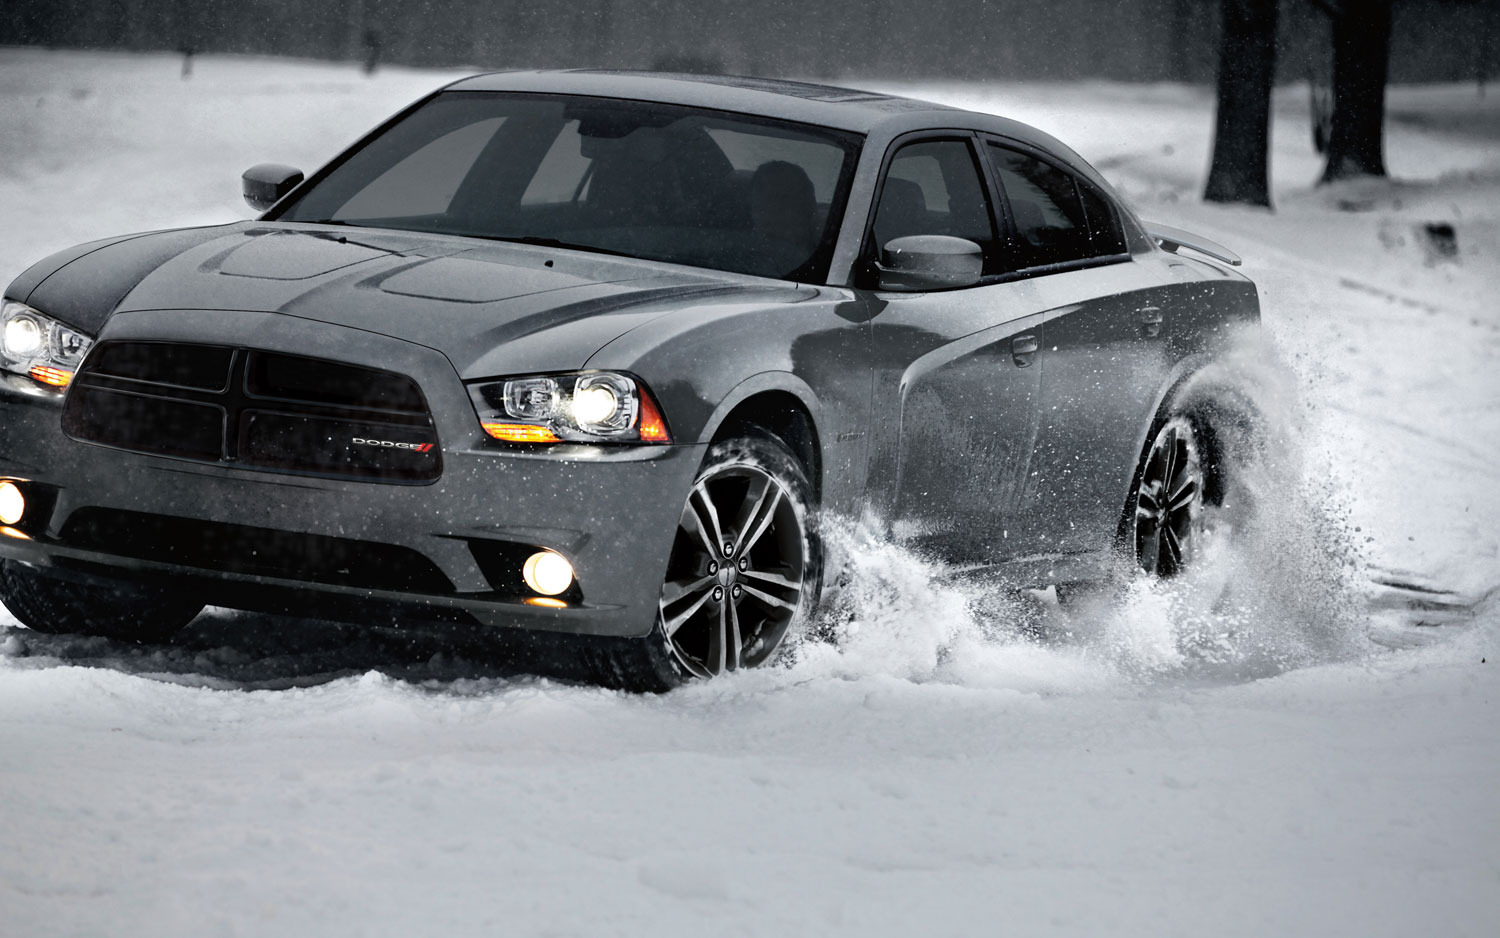 New 2013 Dodge Charger Awd Sport Adds Power Paddle Shifters